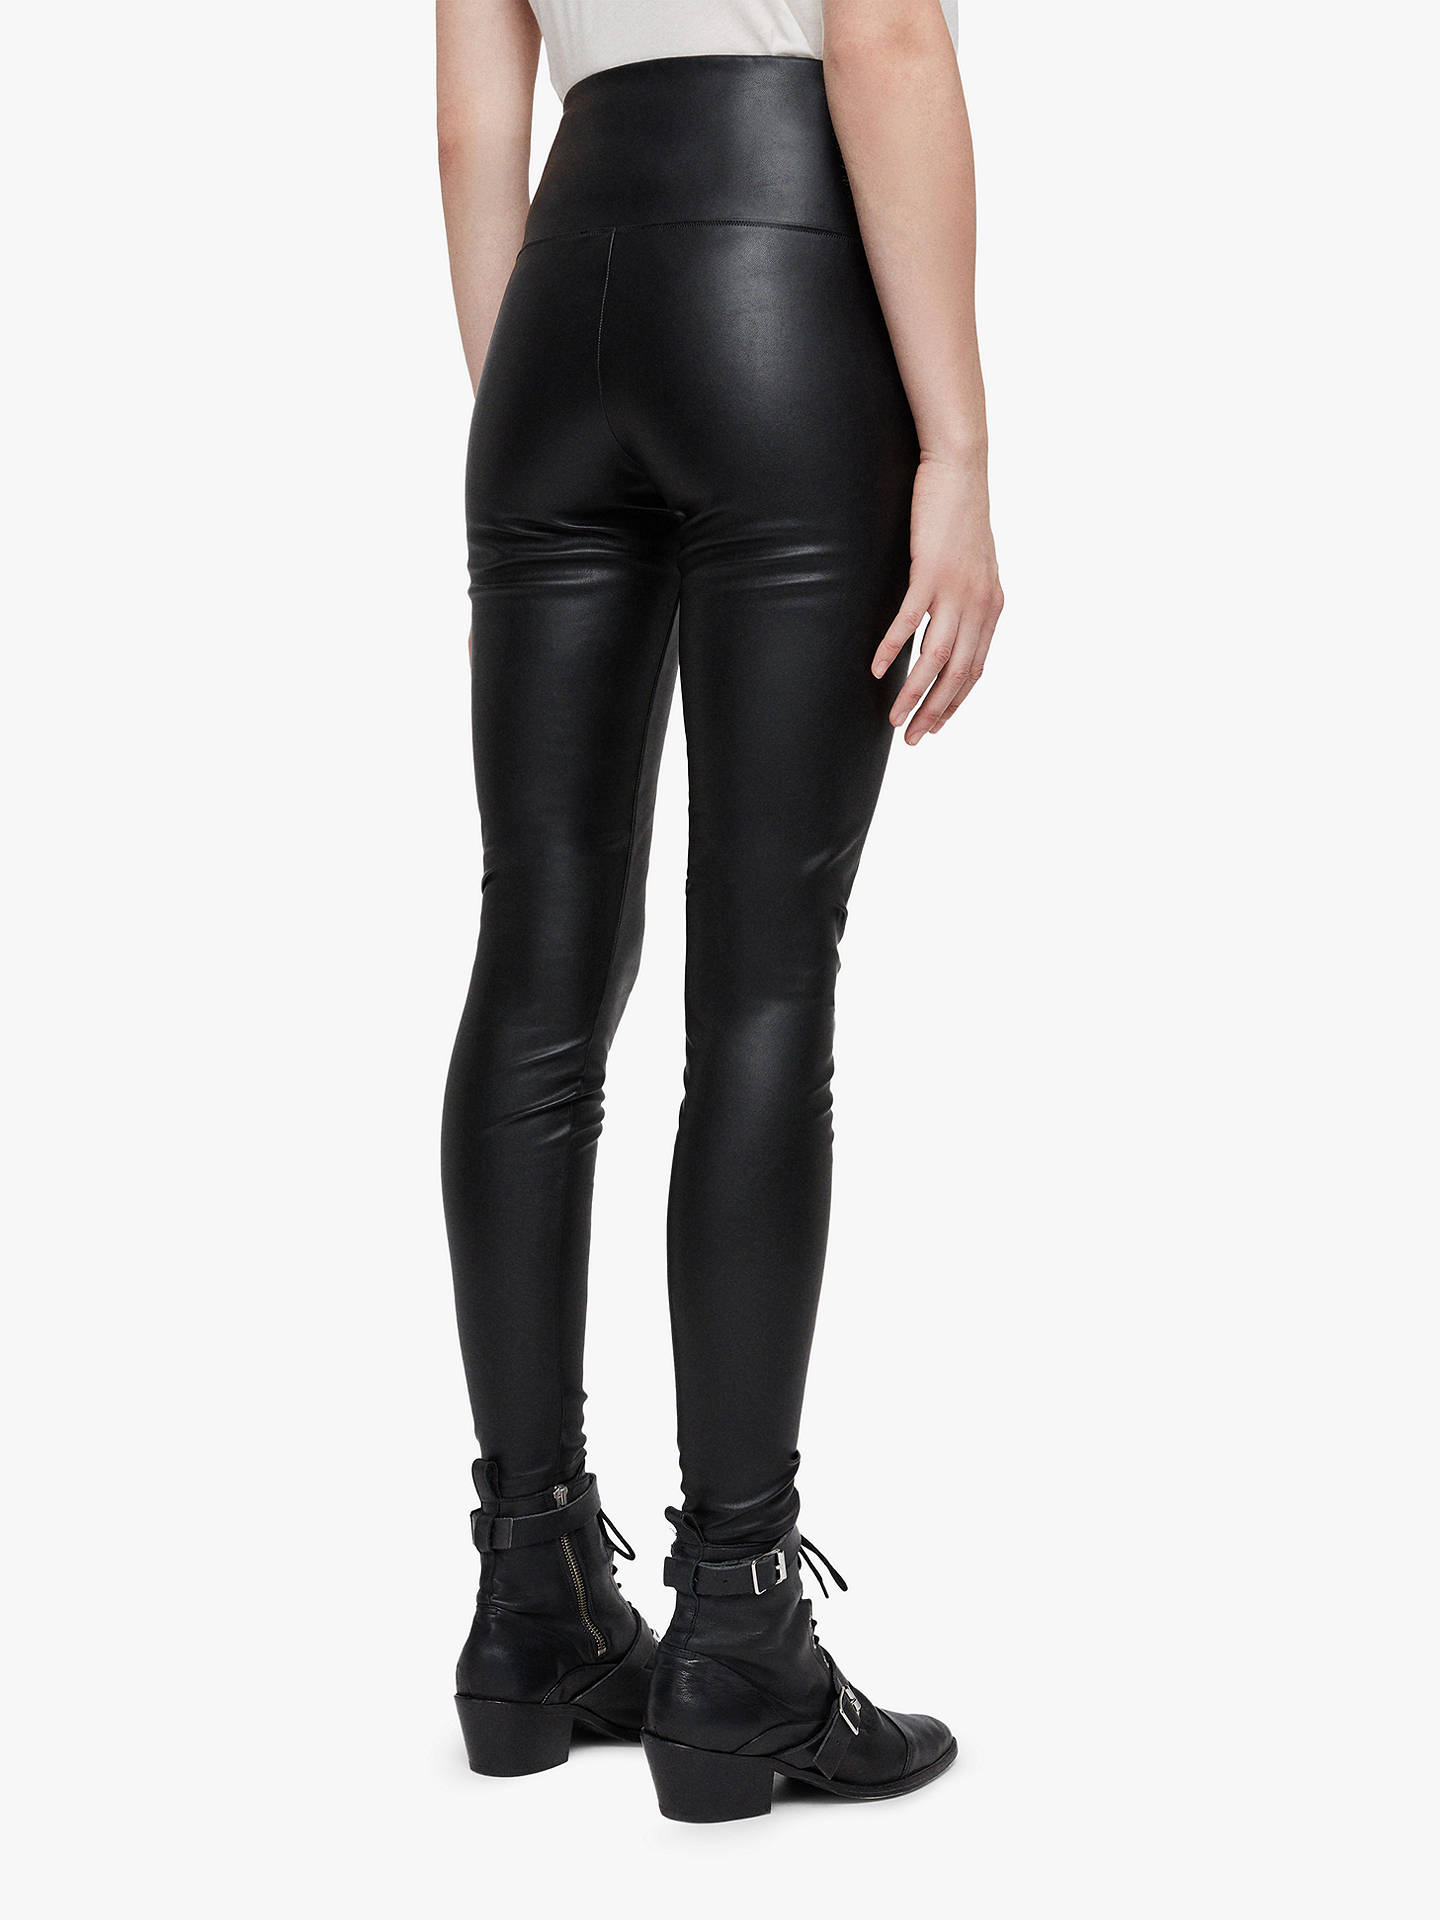 BuyAllSaints Cora Leggings, Black, 8 Online at johnlewis.com